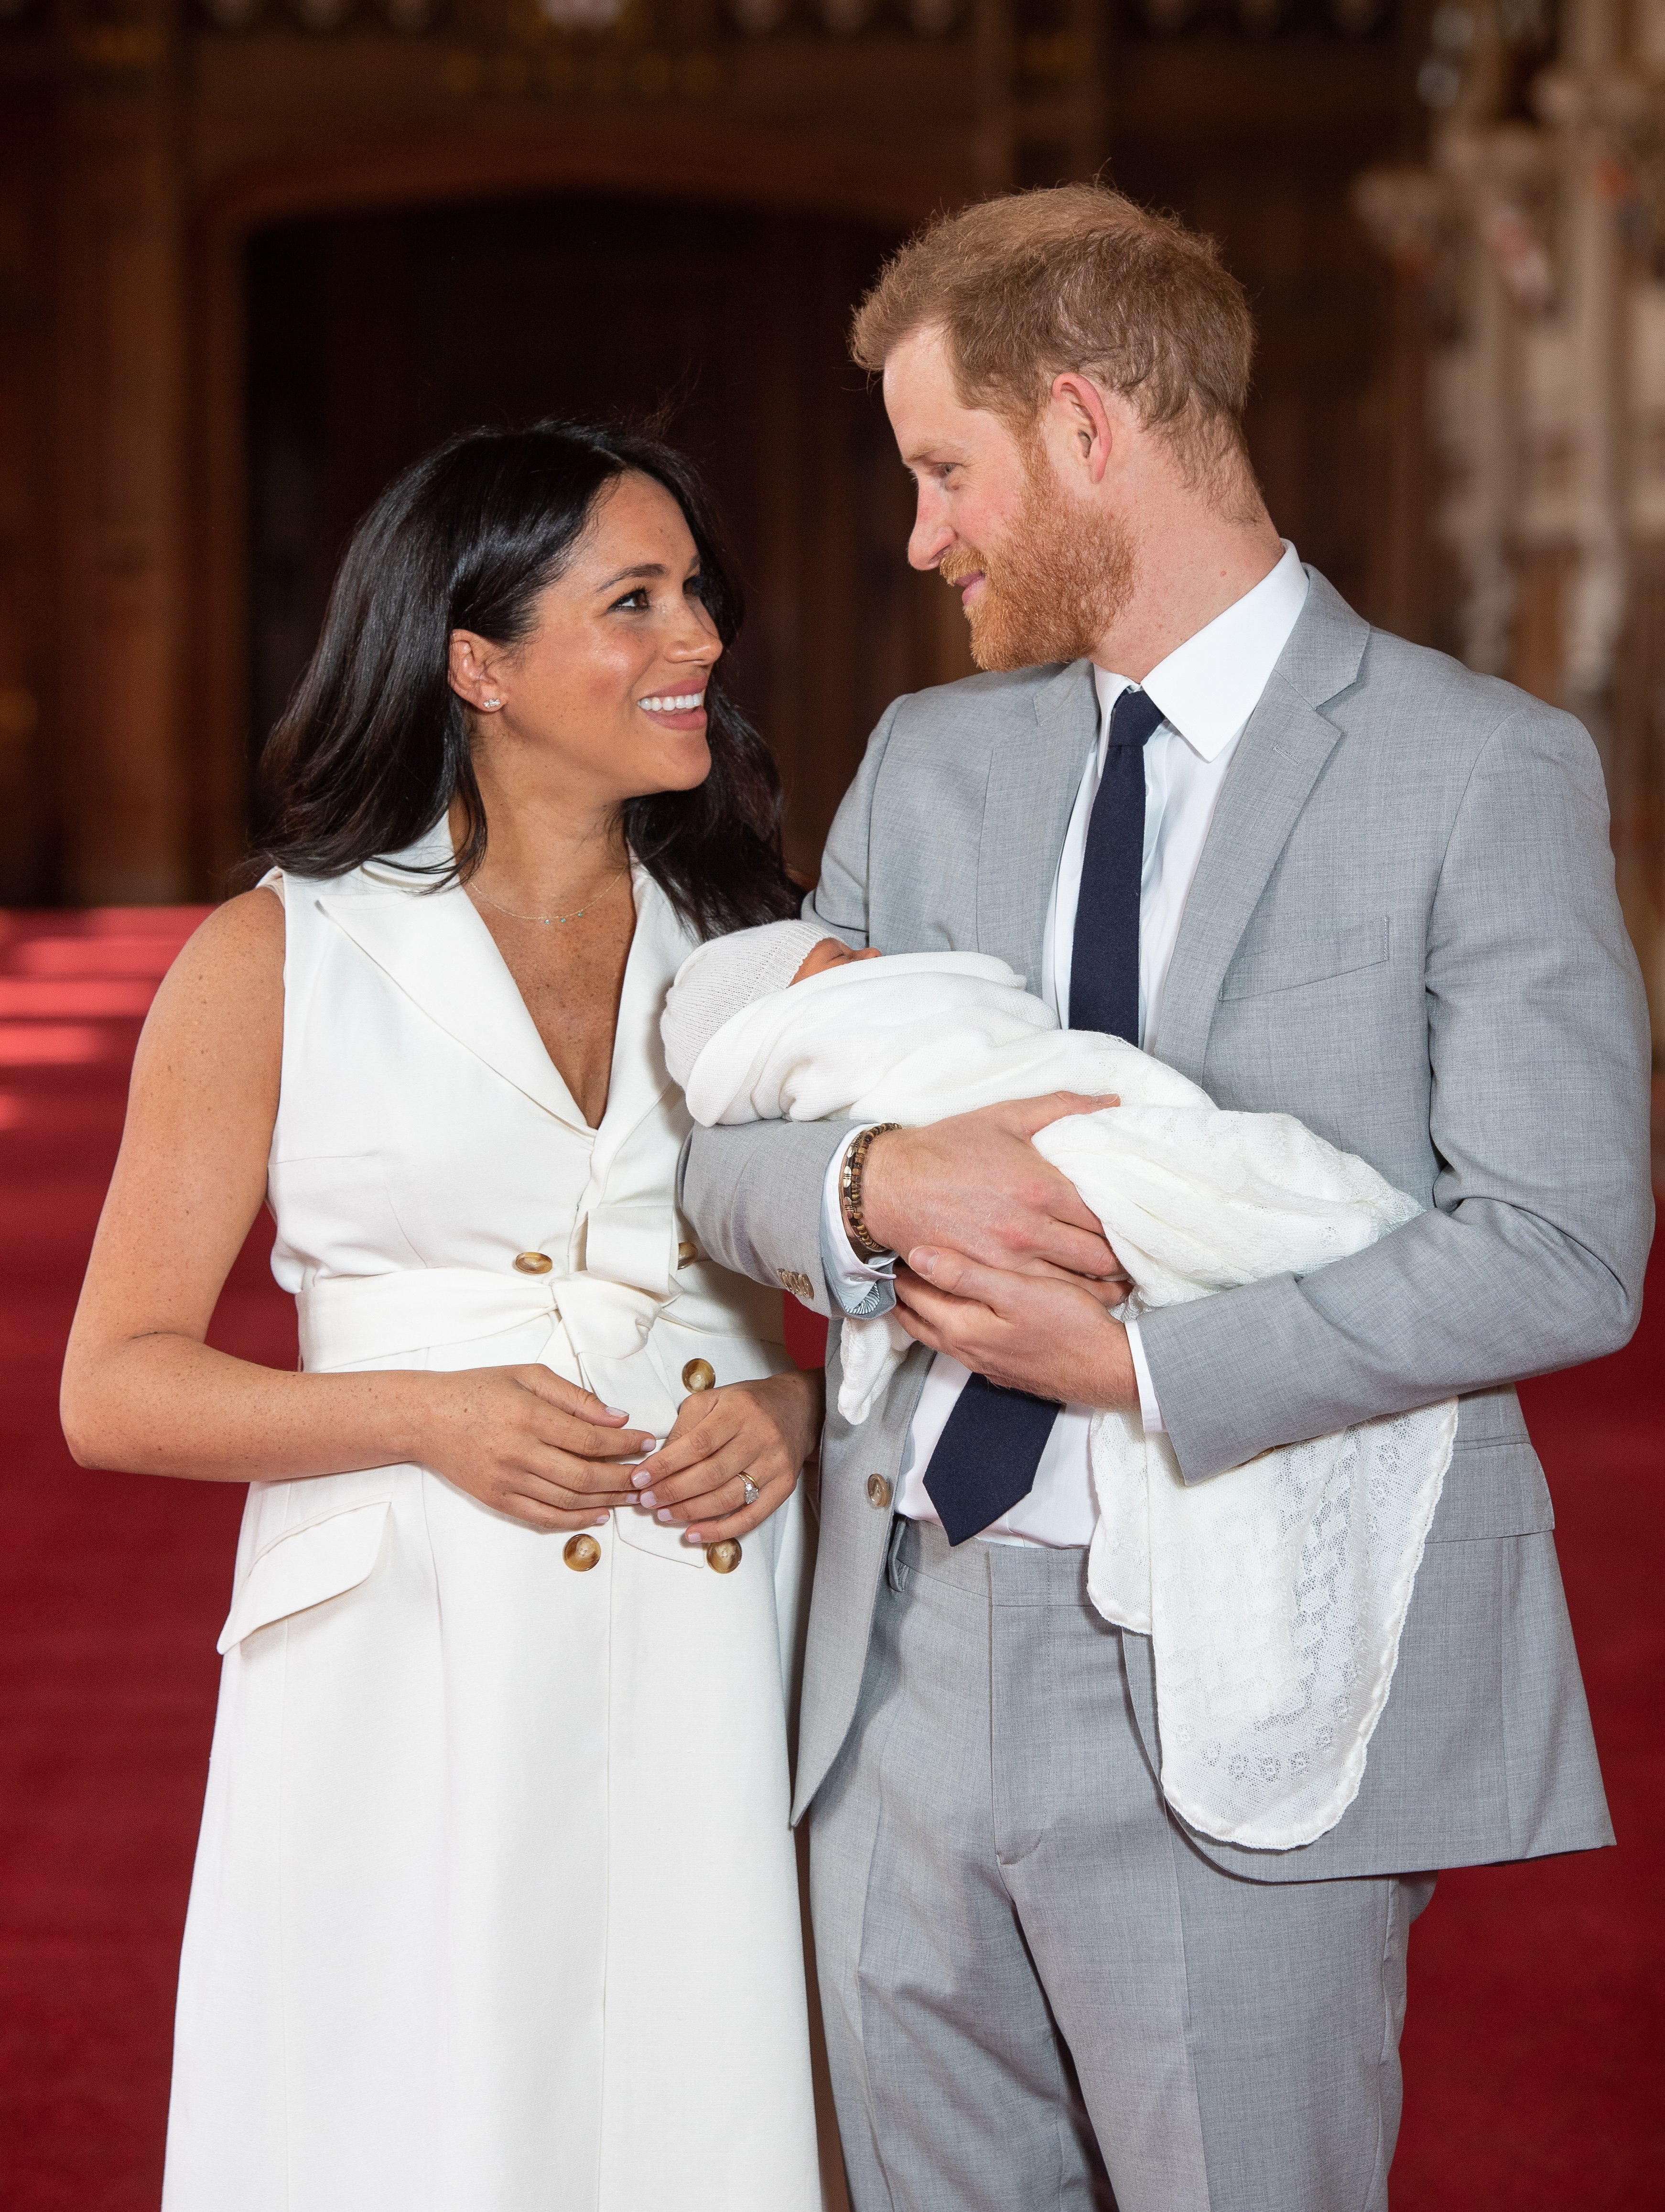 Meghan Markle and Prince Harry take first photos with their newborn son on Wednesday May 8, 2019 | Photo: Getty Images